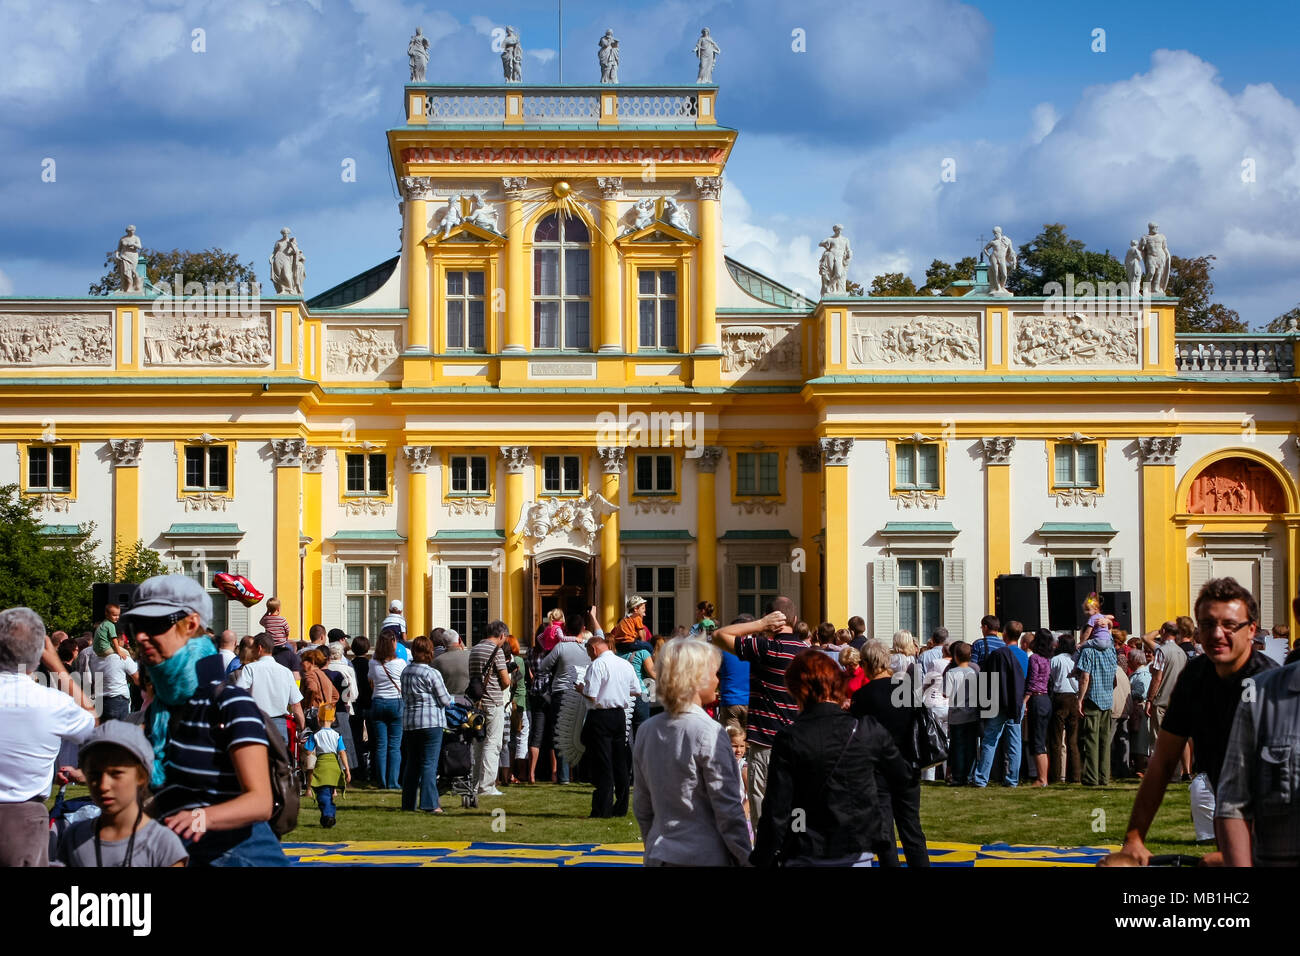 Tourists crowd at the Wilanow Royal Palace museum, celebrating the Wilanow Days. WARSAW, POLAND - SEPTEMBER 13, 2009 Stock Photo